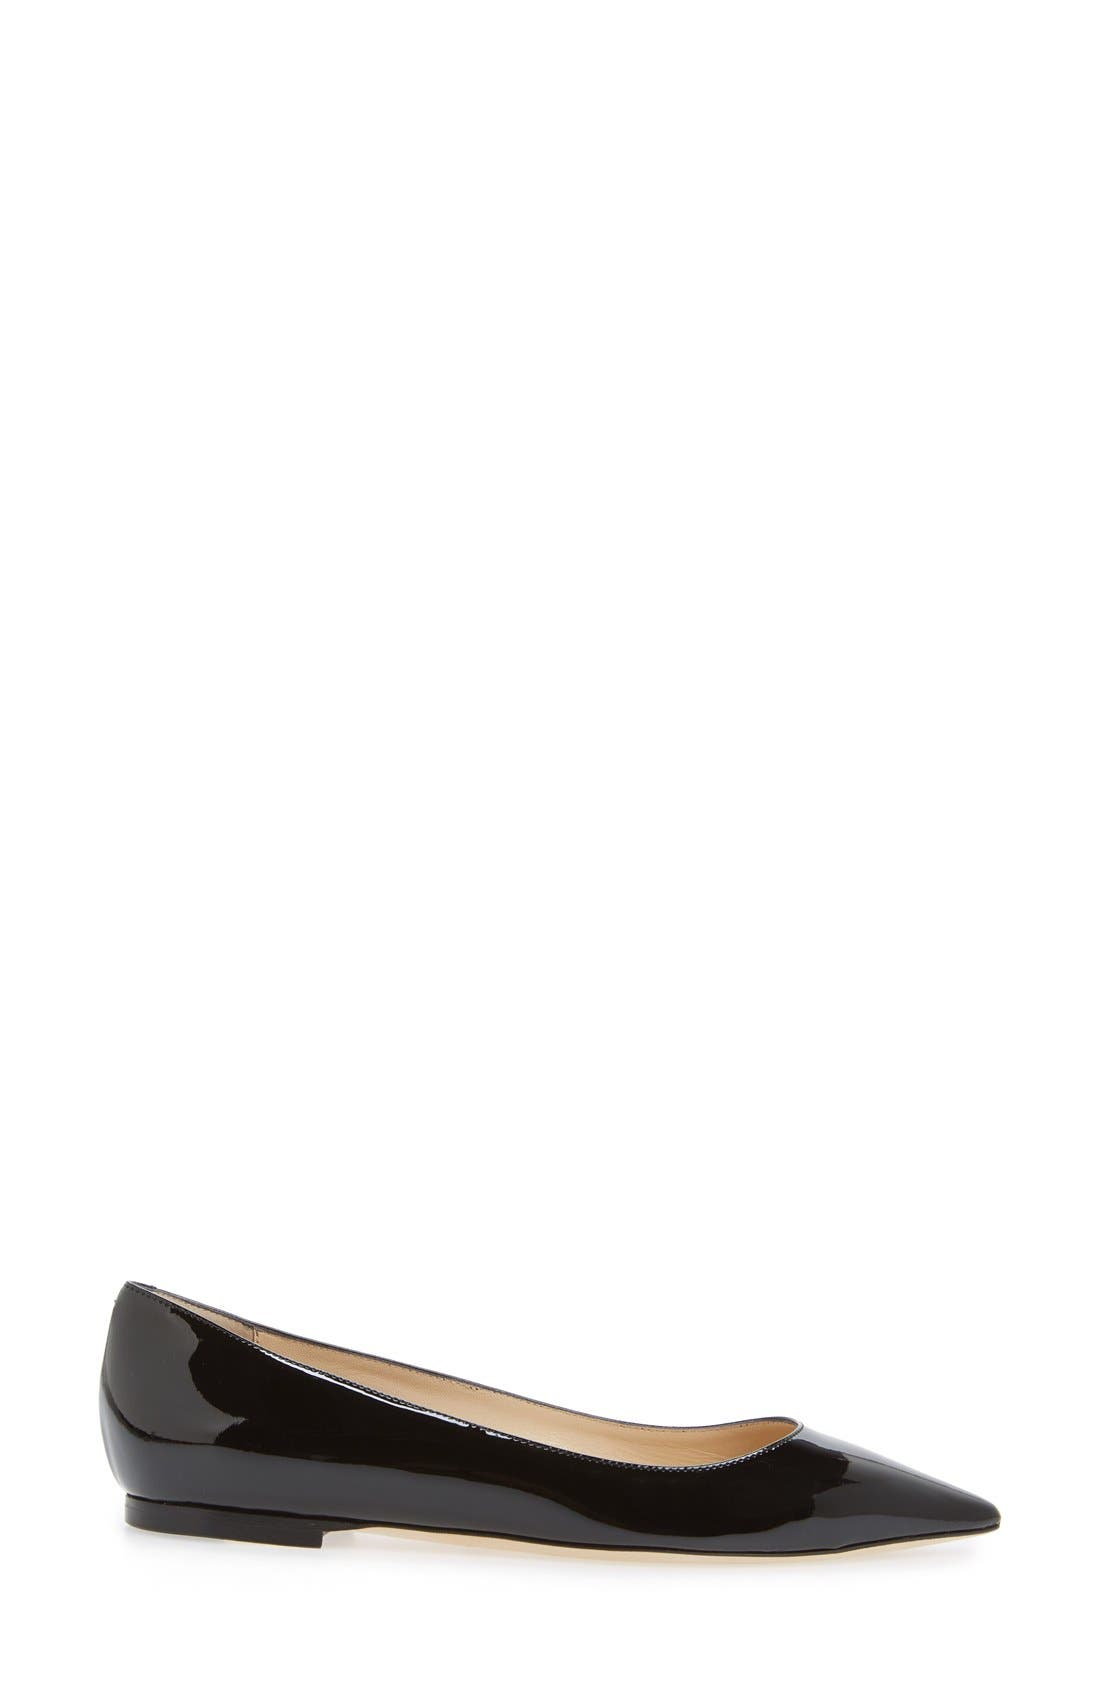 JIMMY CHOO,                             'Romy' Pointy Toe Flat,                             Alternate thumbnail 4, color,                             004